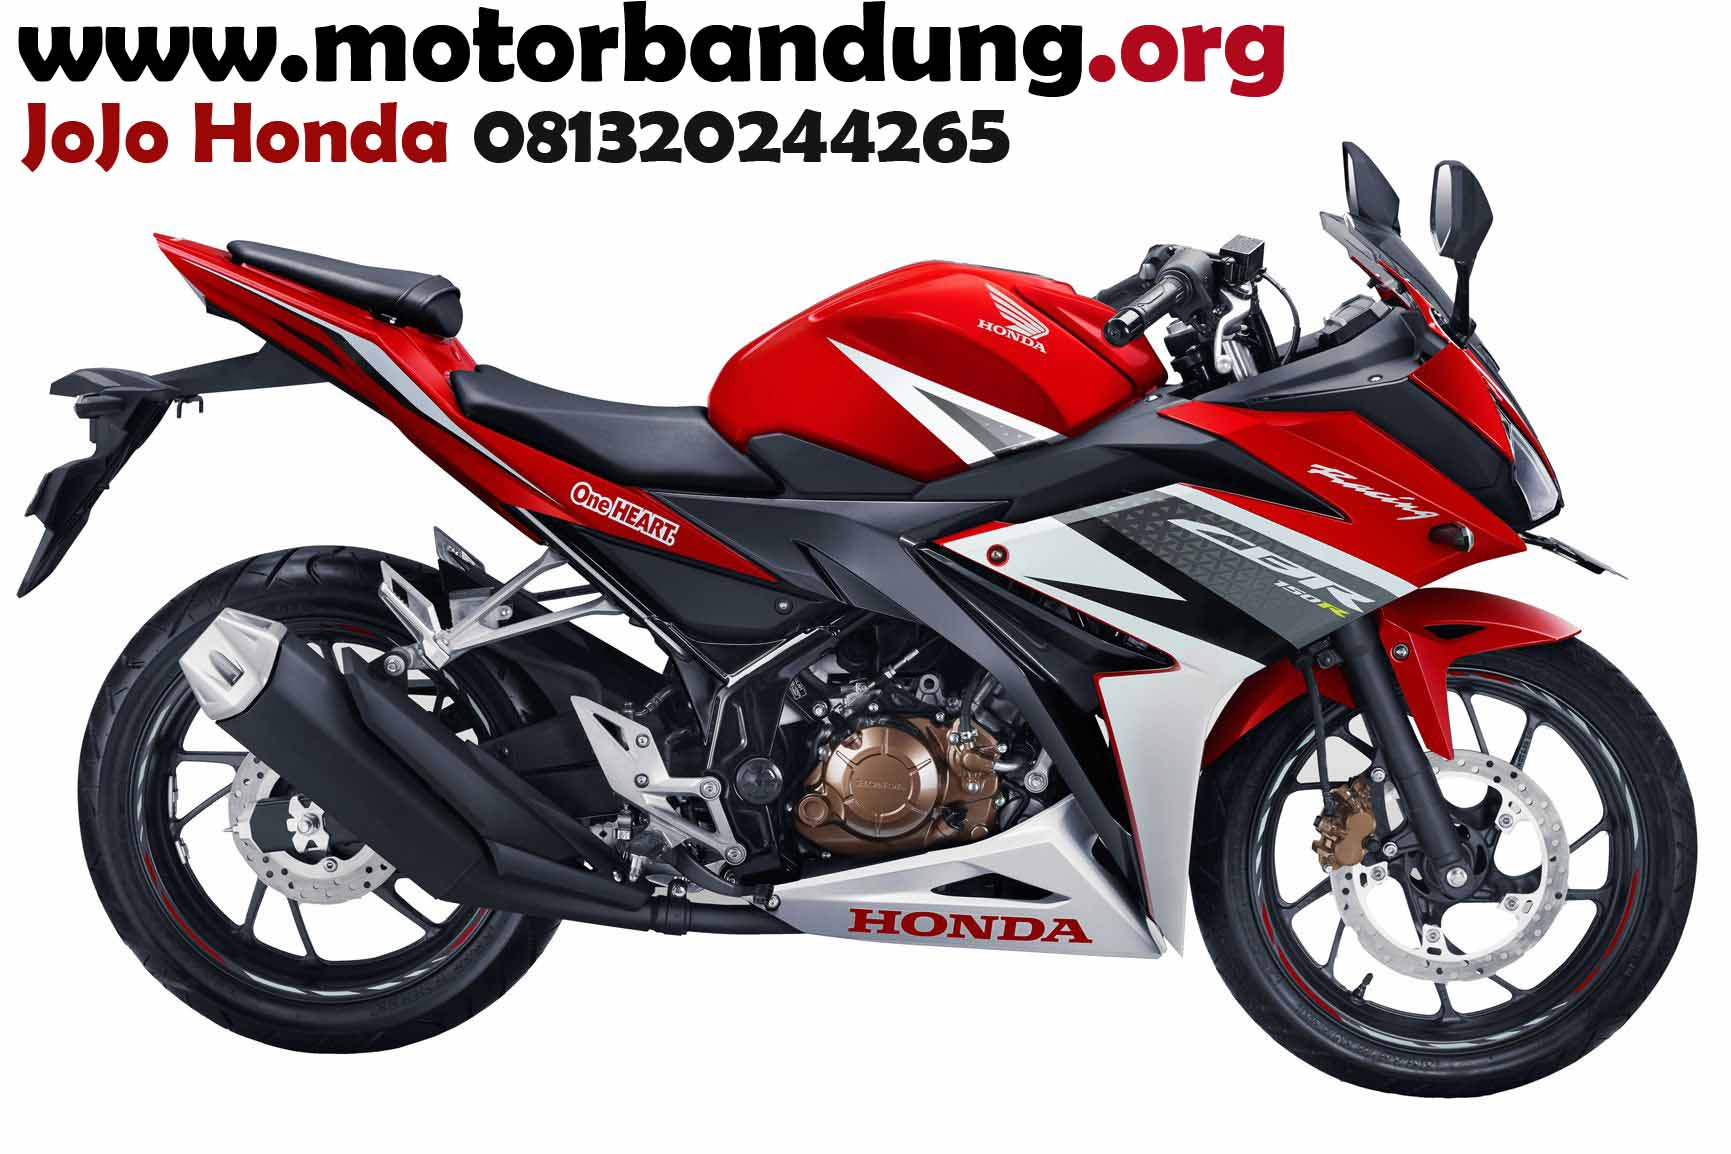 honda all new cbr 150 r bandung, cbr 150 facelift